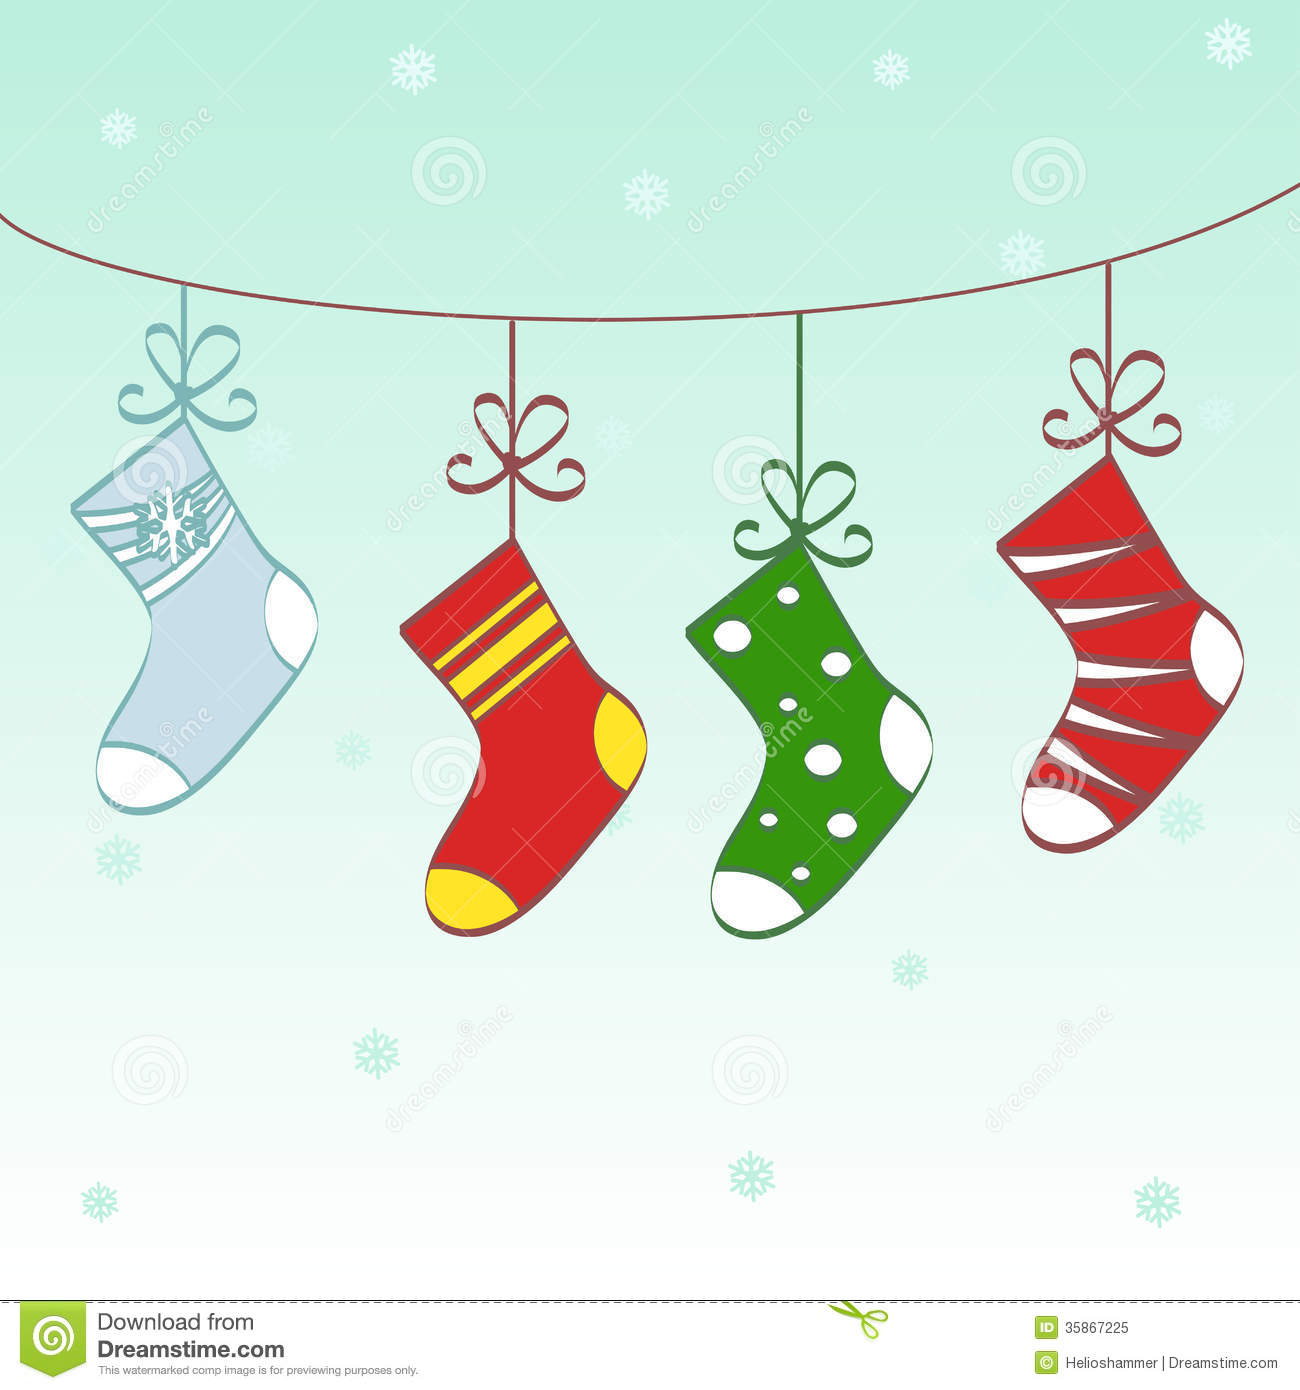 Christmas Stockings Cartoon.Christmas Socks Text Frame Stock Vector Illustration Of